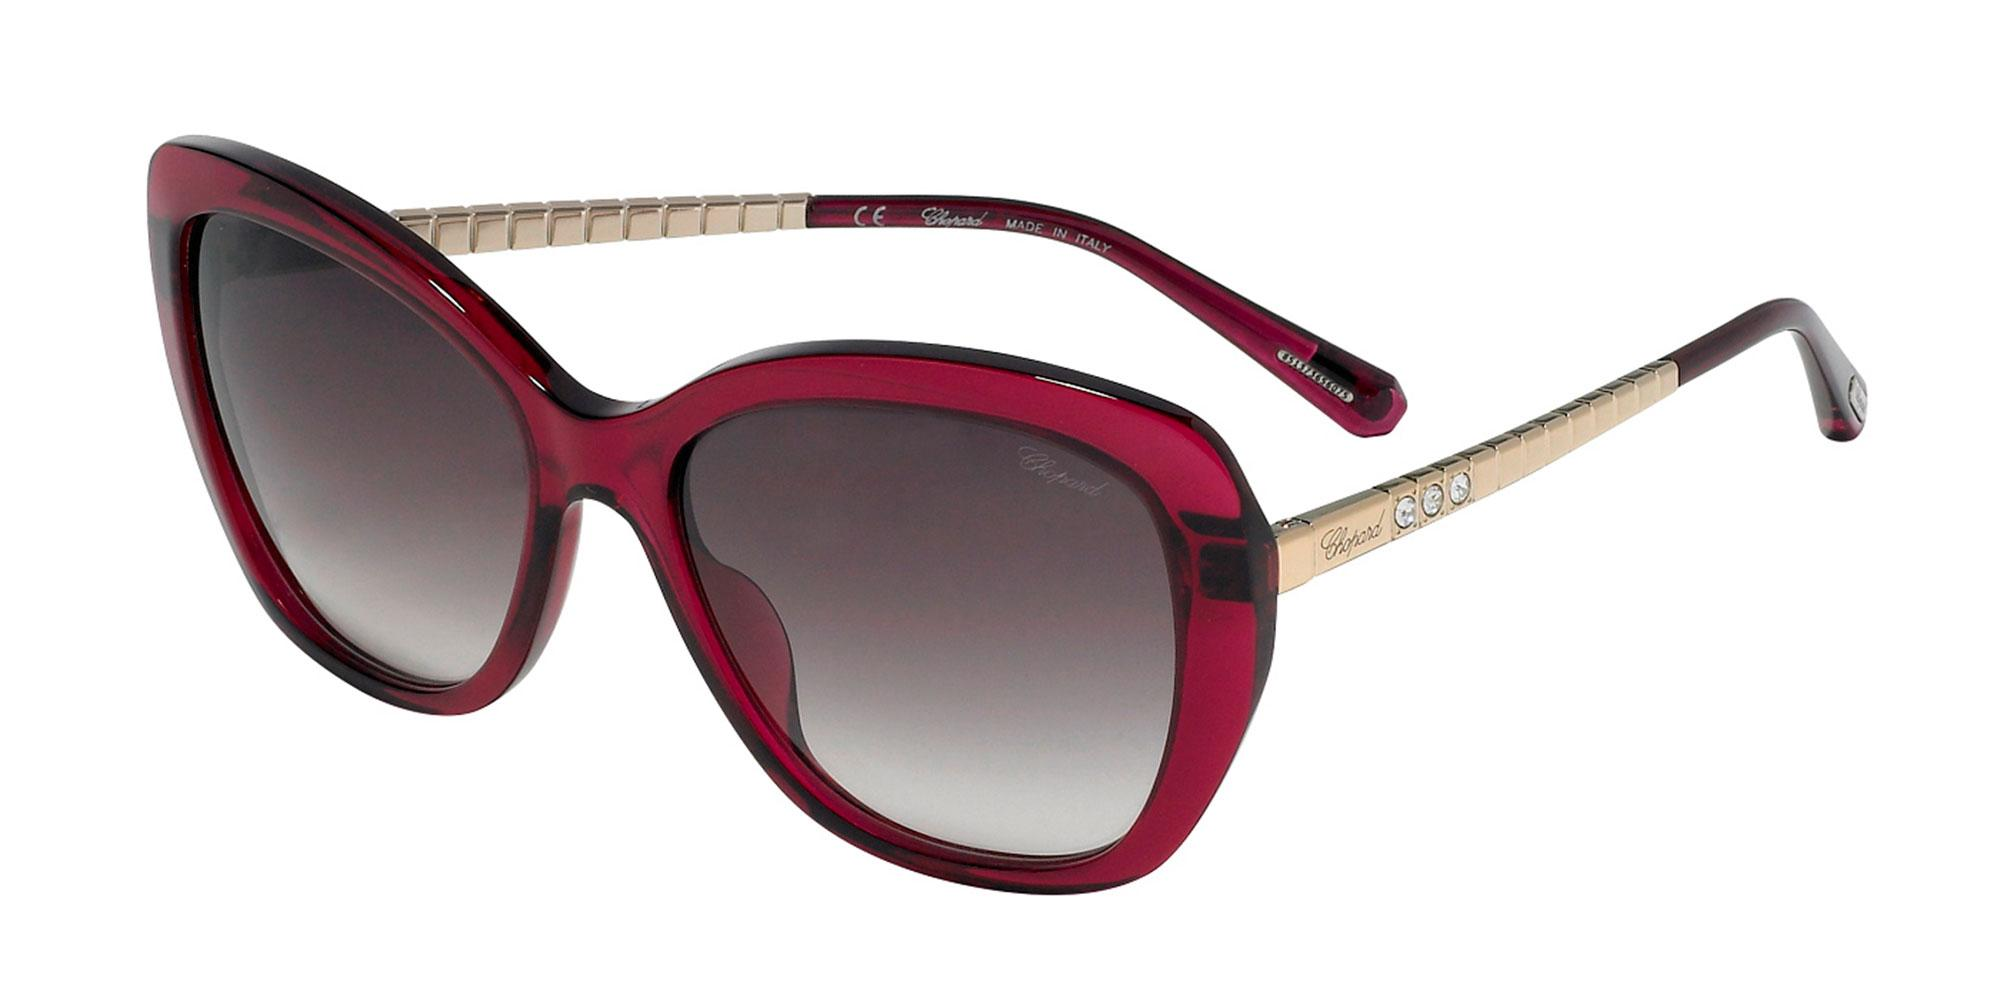 01BV SCH259S Sunglasses, Chopard